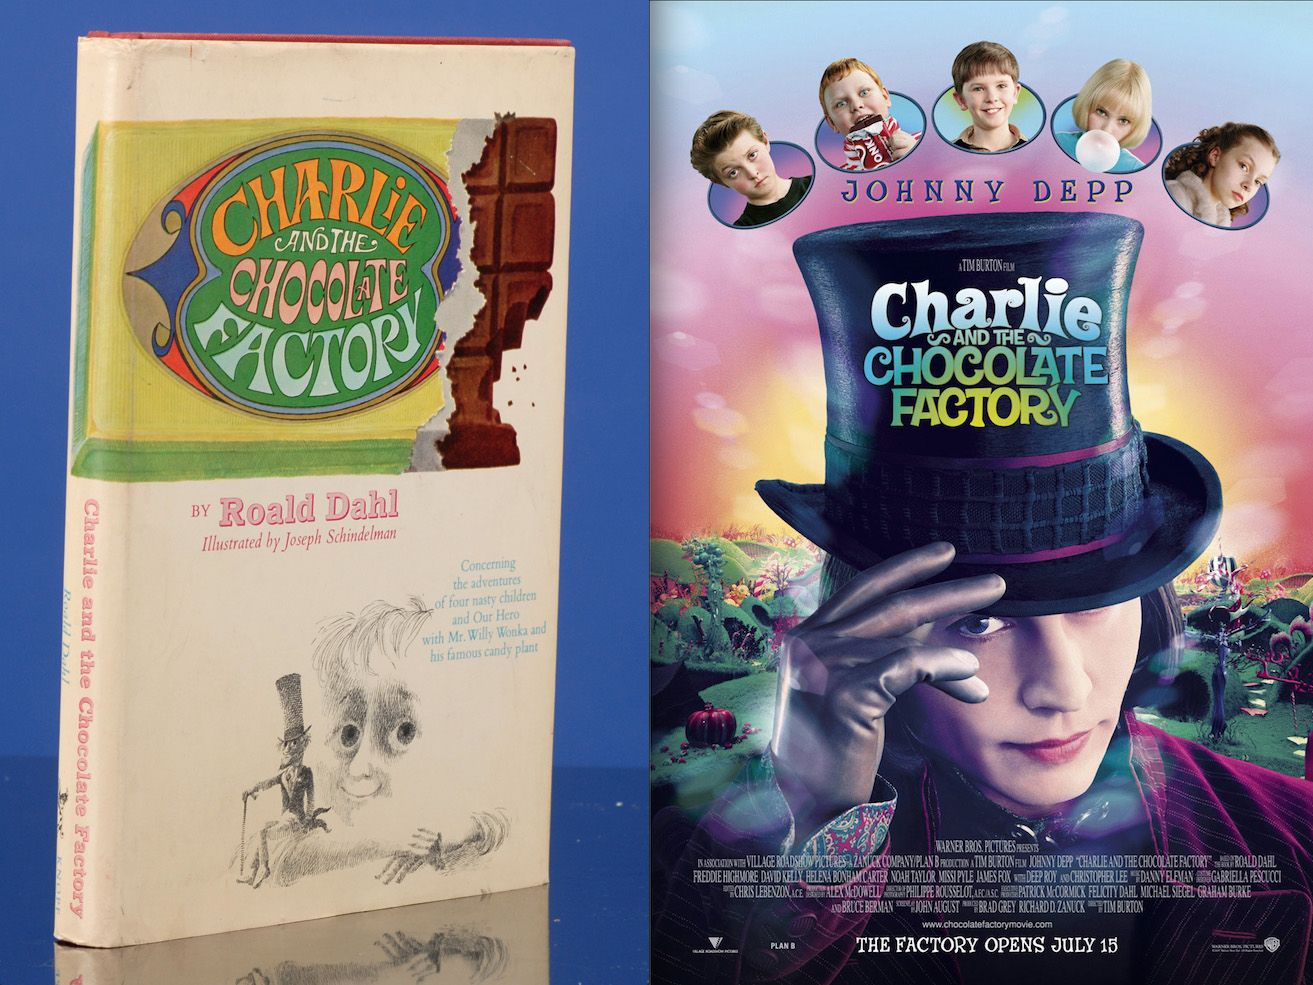 charlie the chocolate factory is a children s book written charlie the chocolate factory is a 1964 children s book written by british author roald